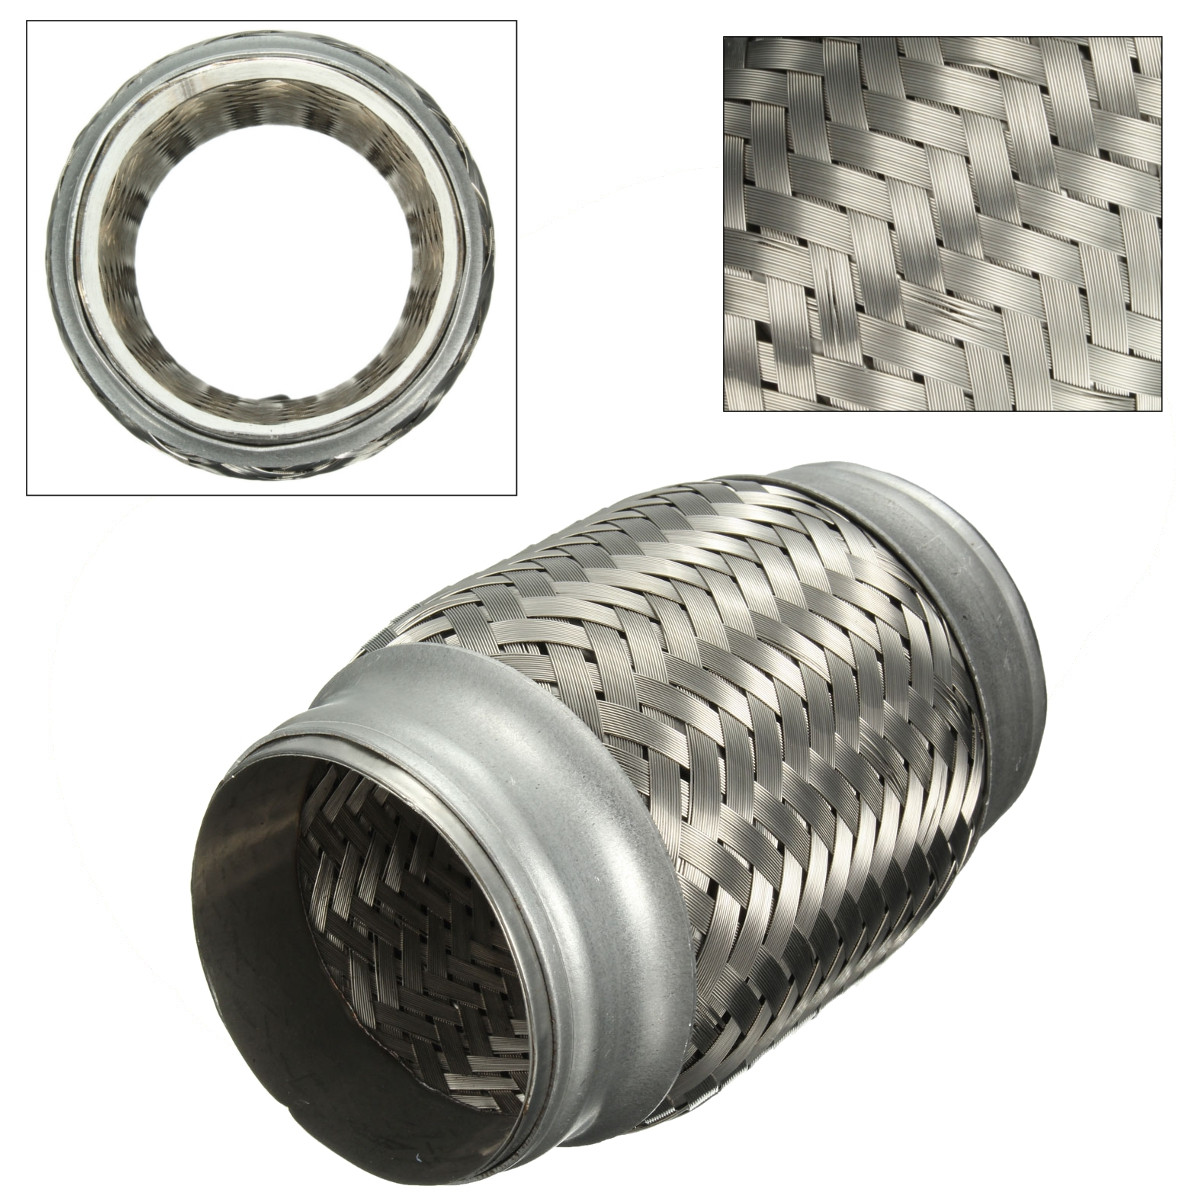 car 2 5 x 5 stainless steel exhaust pipe hose double braided flex connector adapter piping us